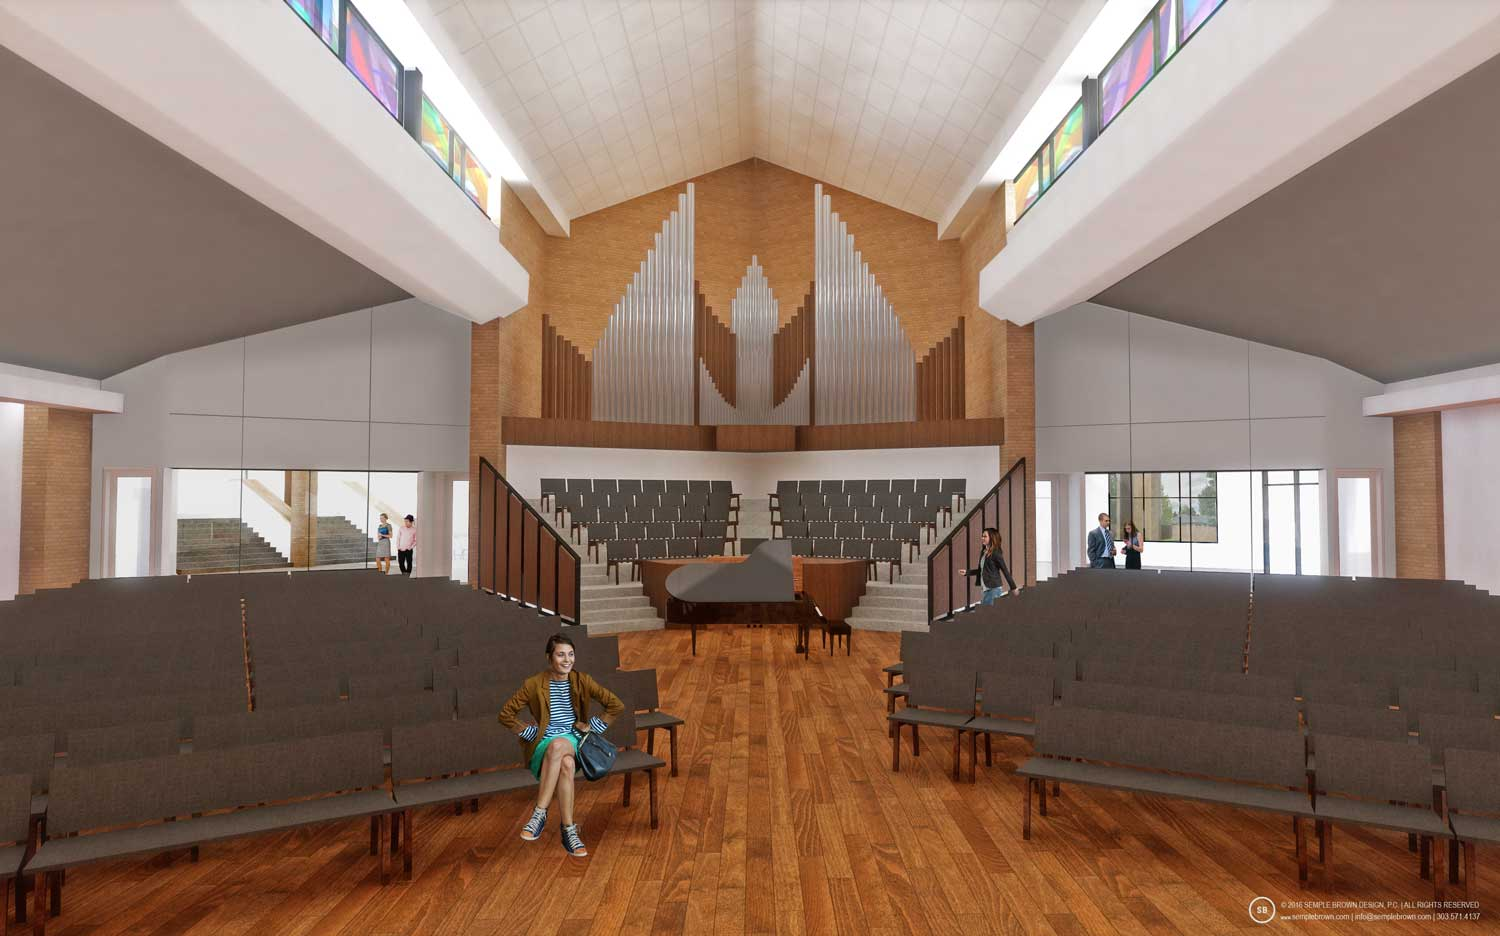 Proposed Wellshire Church Sanctuary Interior, looking West with painted ceiling